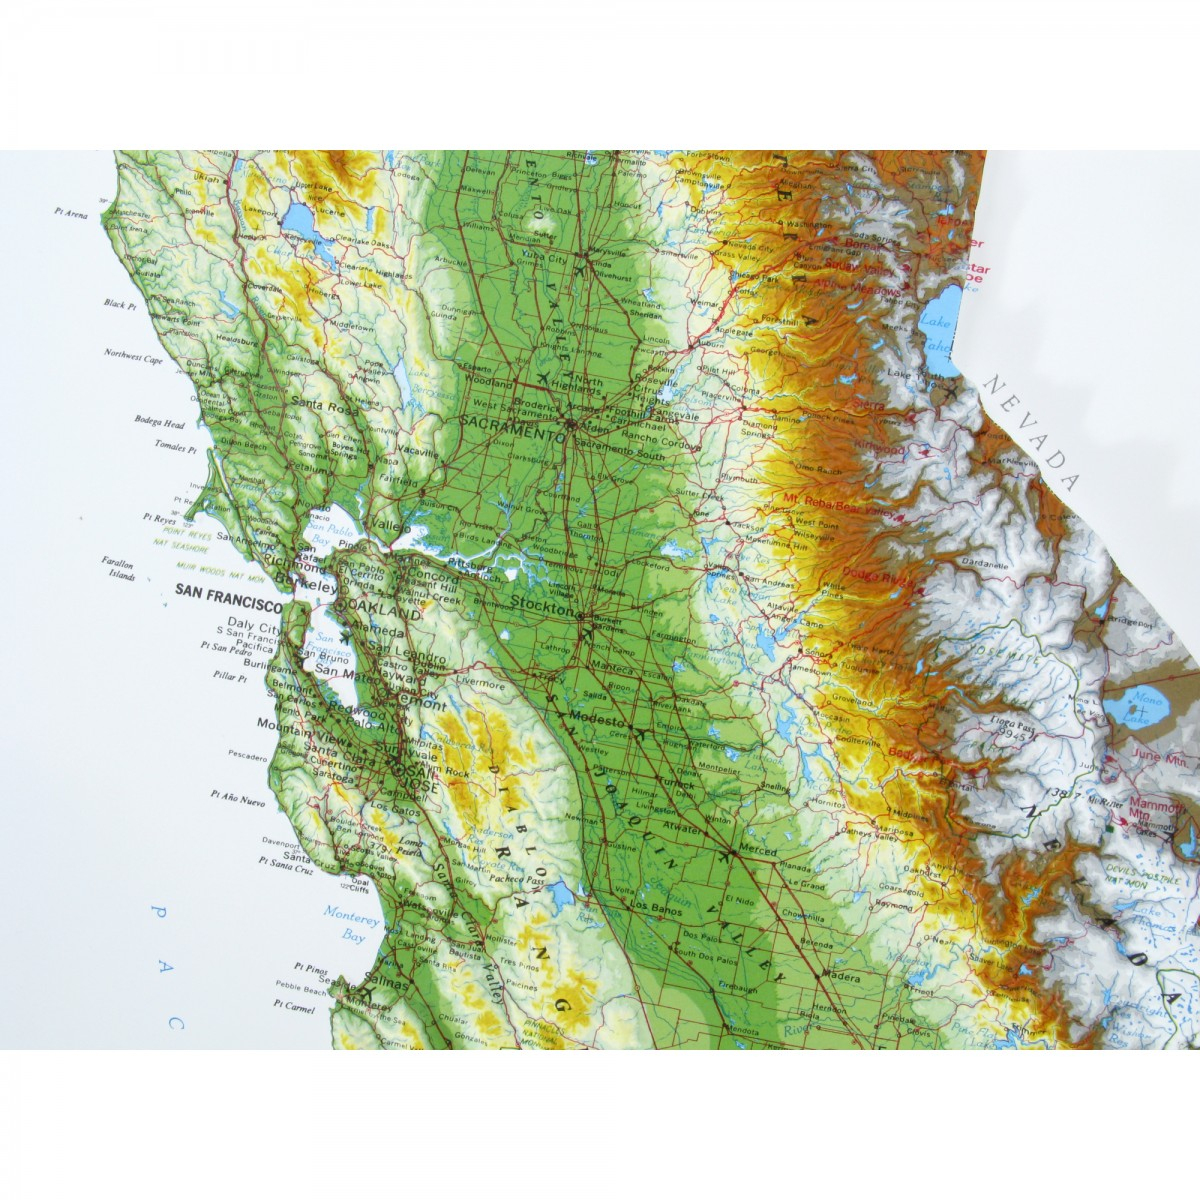 951 - California Raised Relief Map - California Raised Relief Map